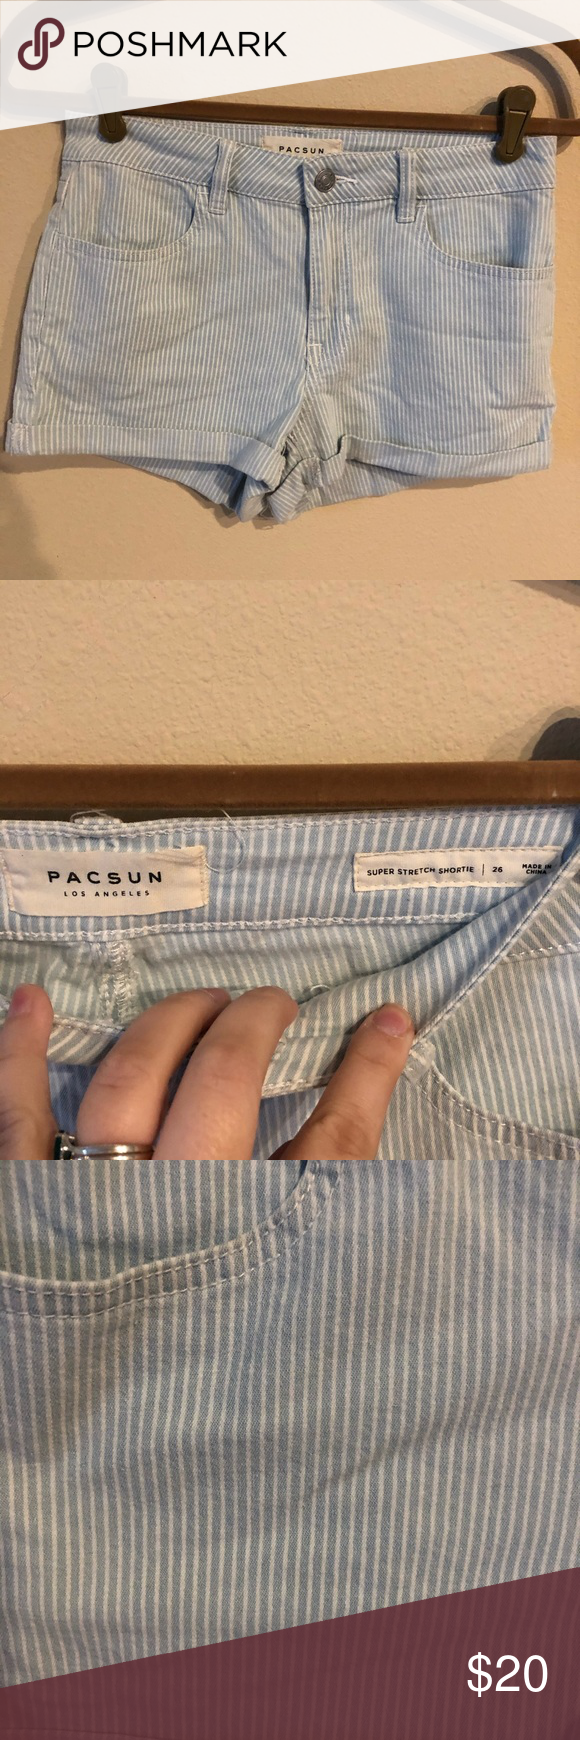 PacSun light blue striped shorts size 26 Super cute, kind of nautical blue and white striped shorts. Cuffed hem. Super stretch shortie. Excellent condition. Size 26. PacSun Shorts #lightblueshorts